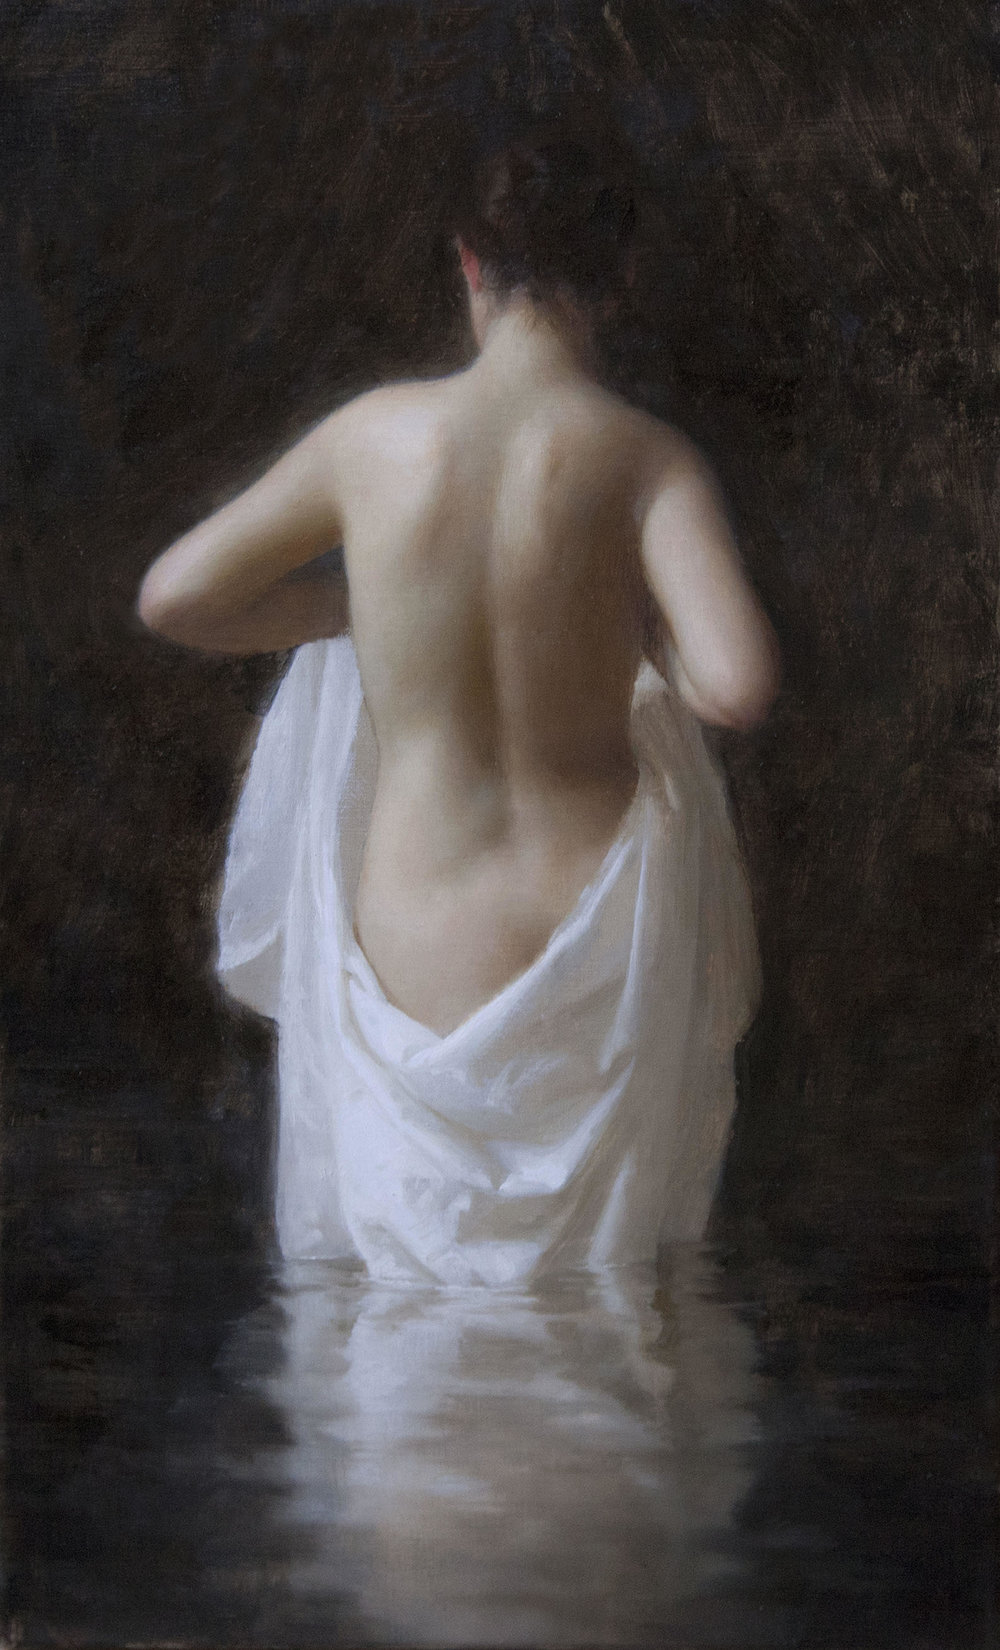 Bather, 16 x 10, by Joshua LaRock